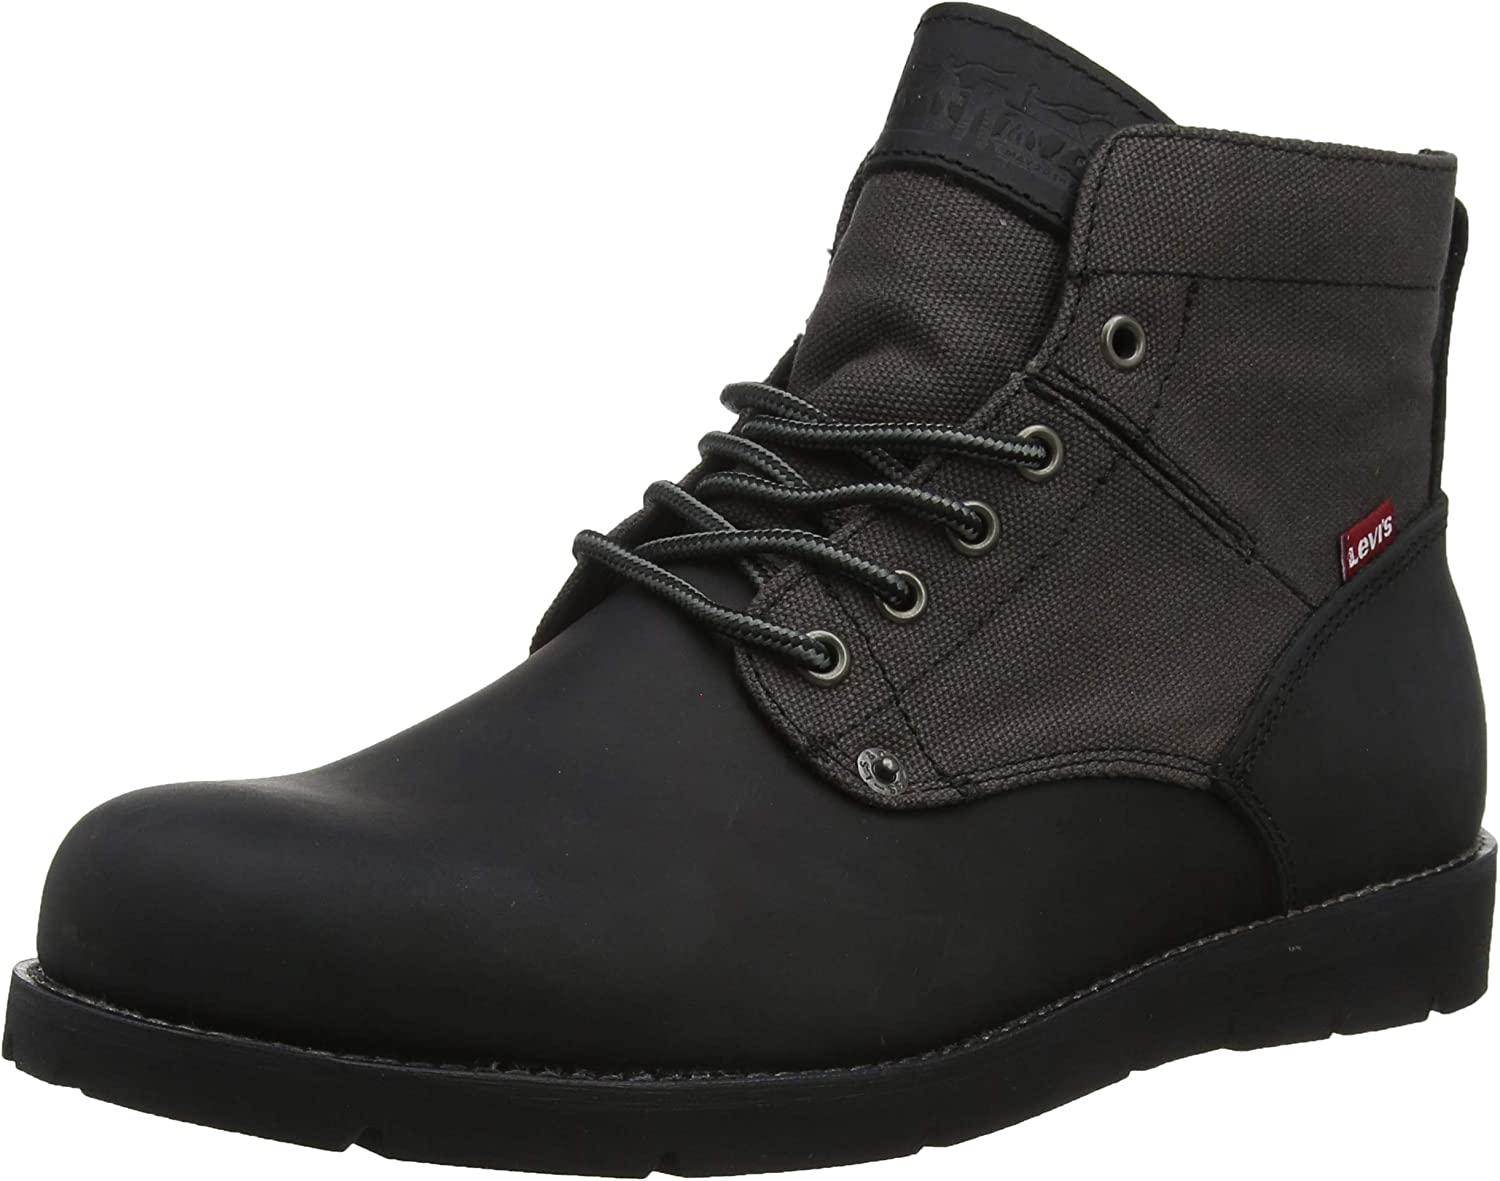 LEVIS FOOTWEAR AND ACCESSORIES Jax Botas Desert Hombre, Negro (B Black/Brown 60), 43 EU (9 UK)